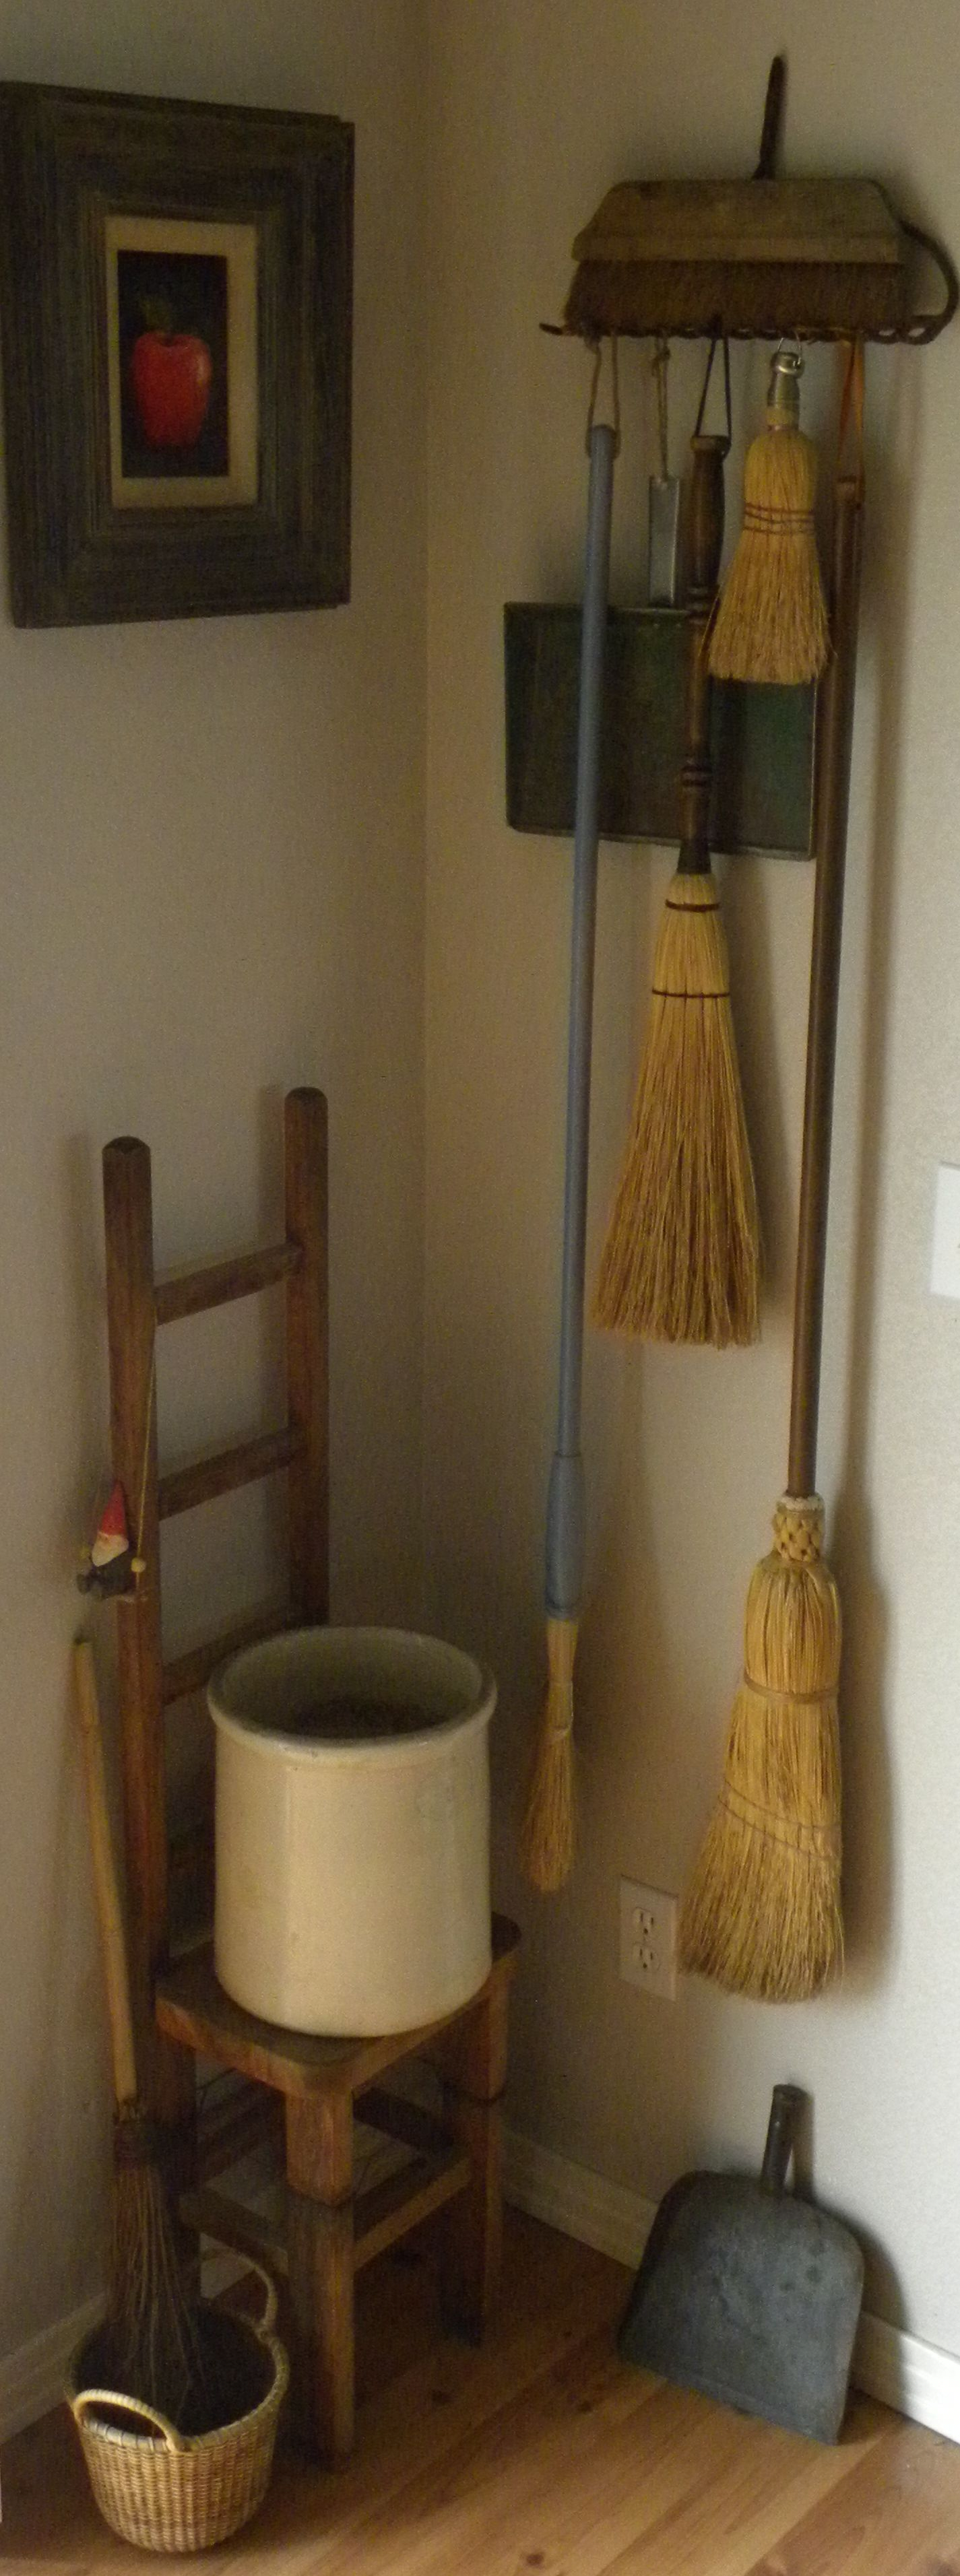 Broom Holder Like The Crock Would Use It For Trash